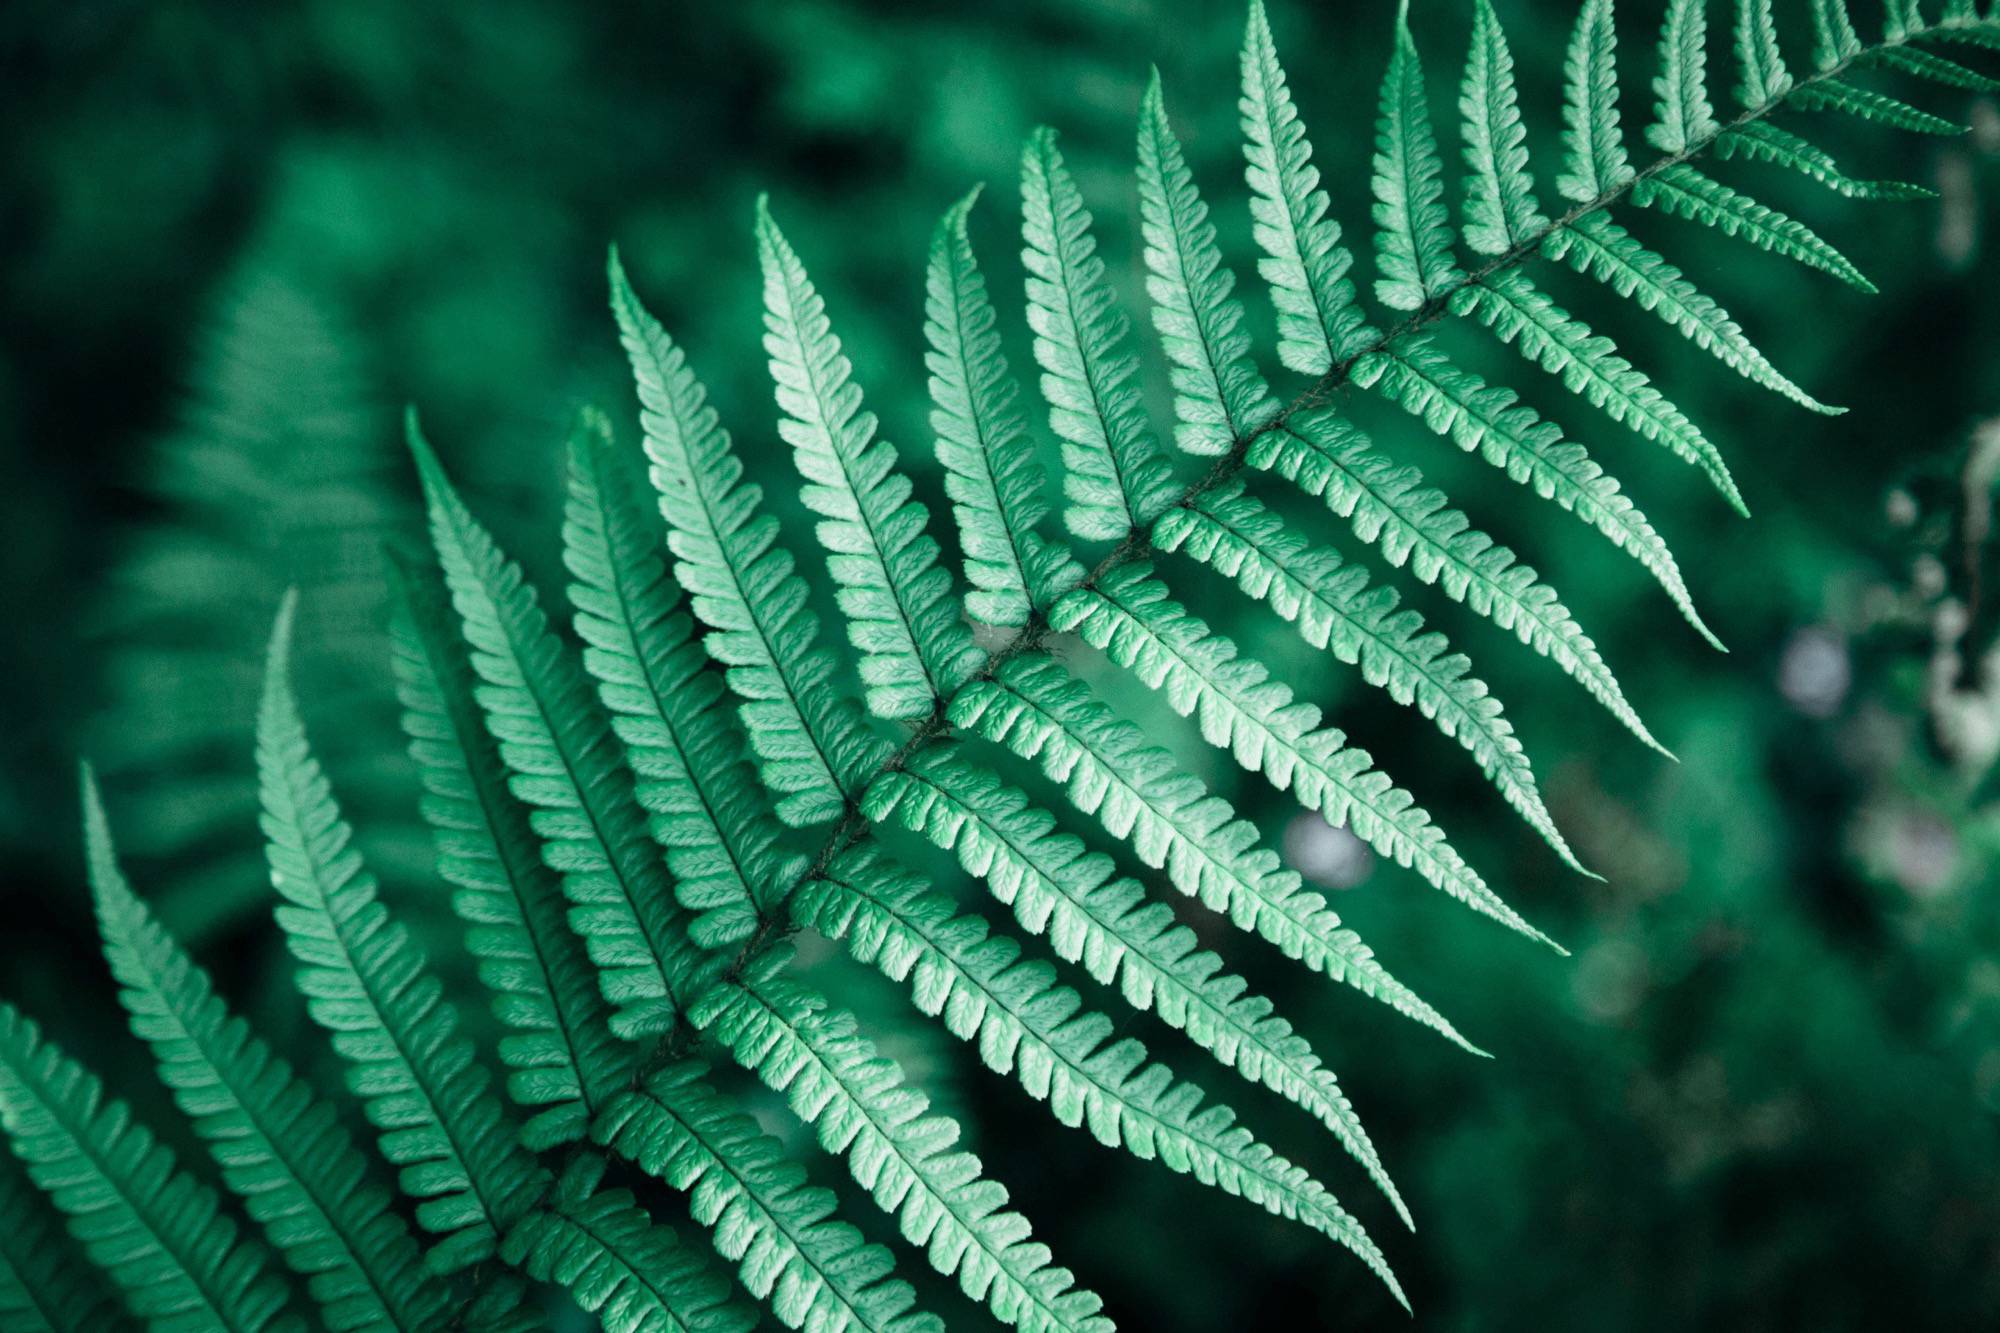 Fern cover